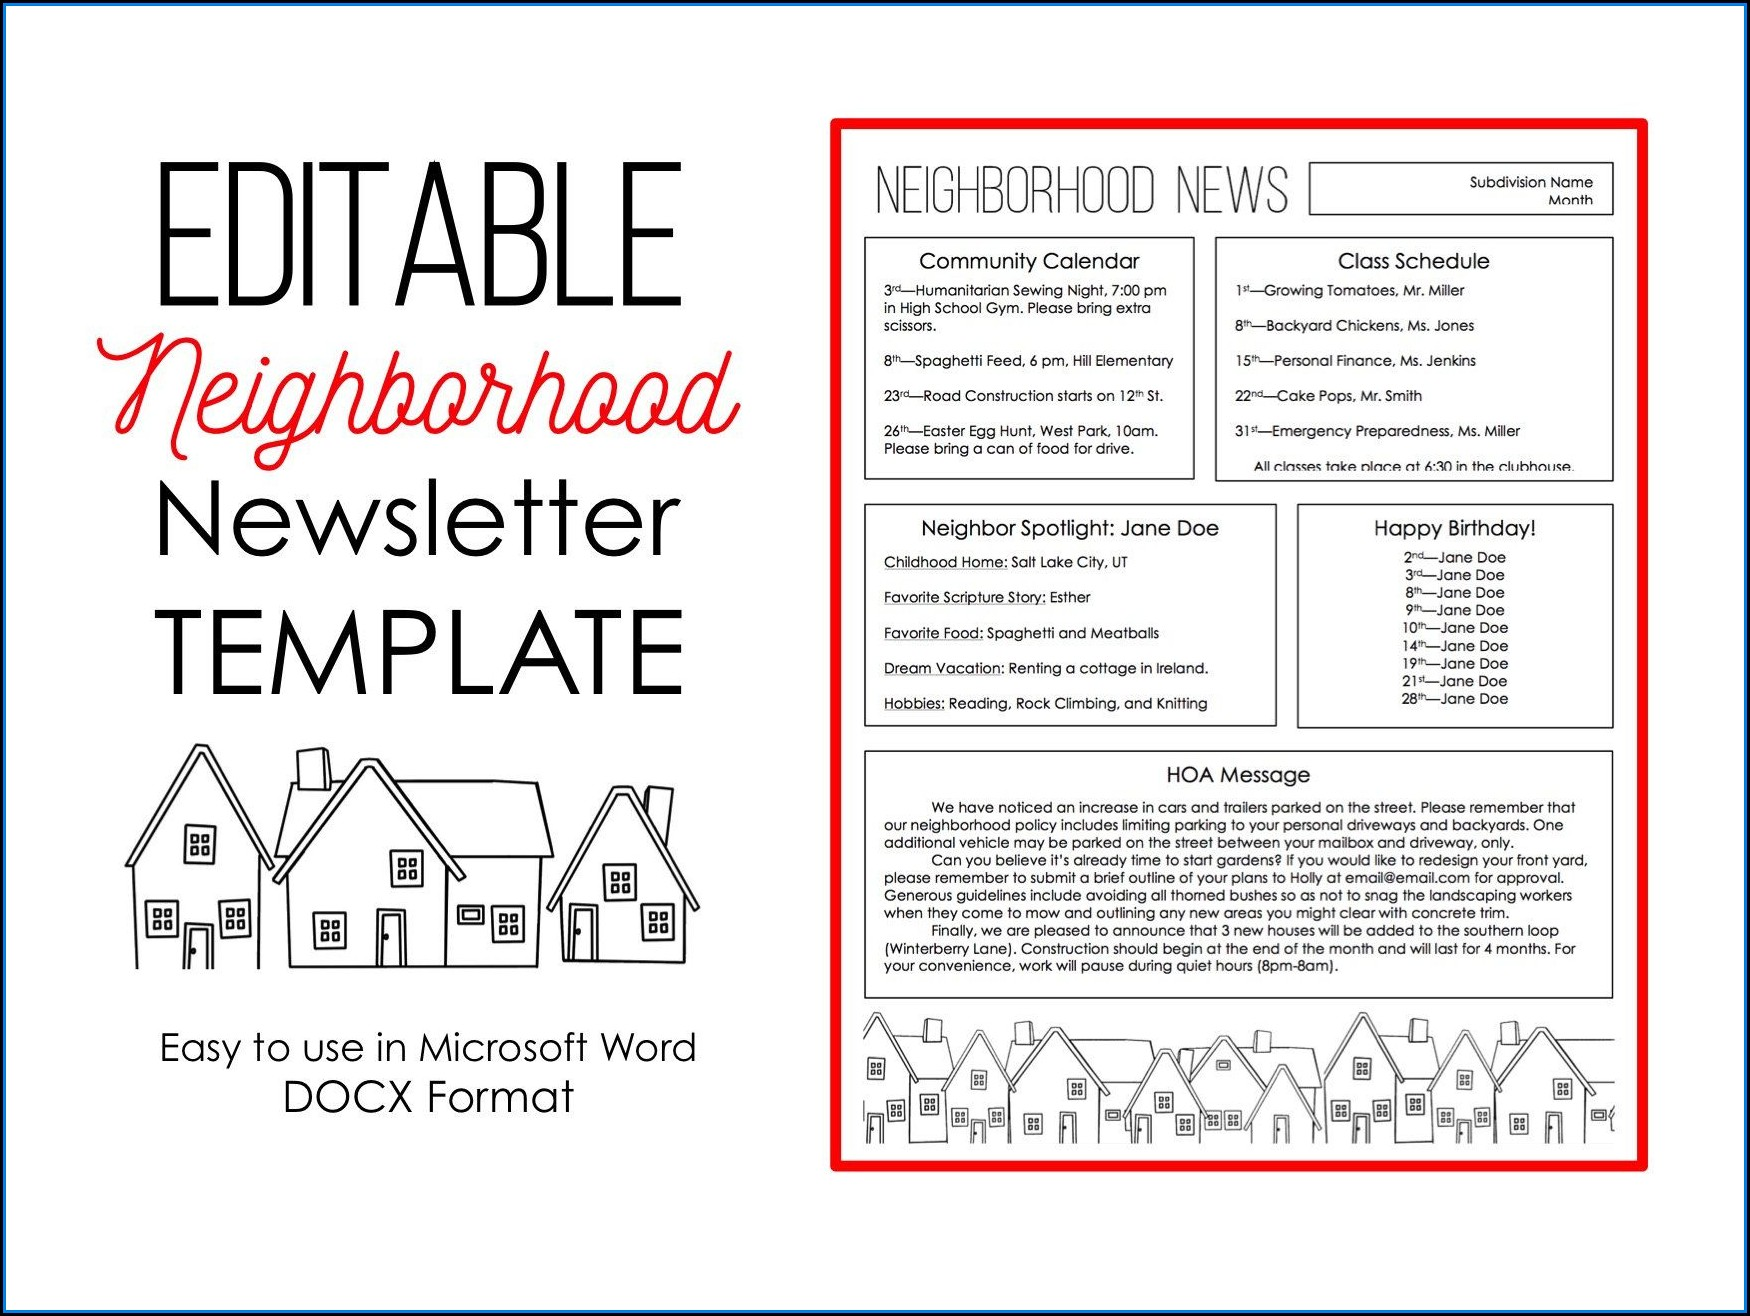 Neighborhood Newsletter Template